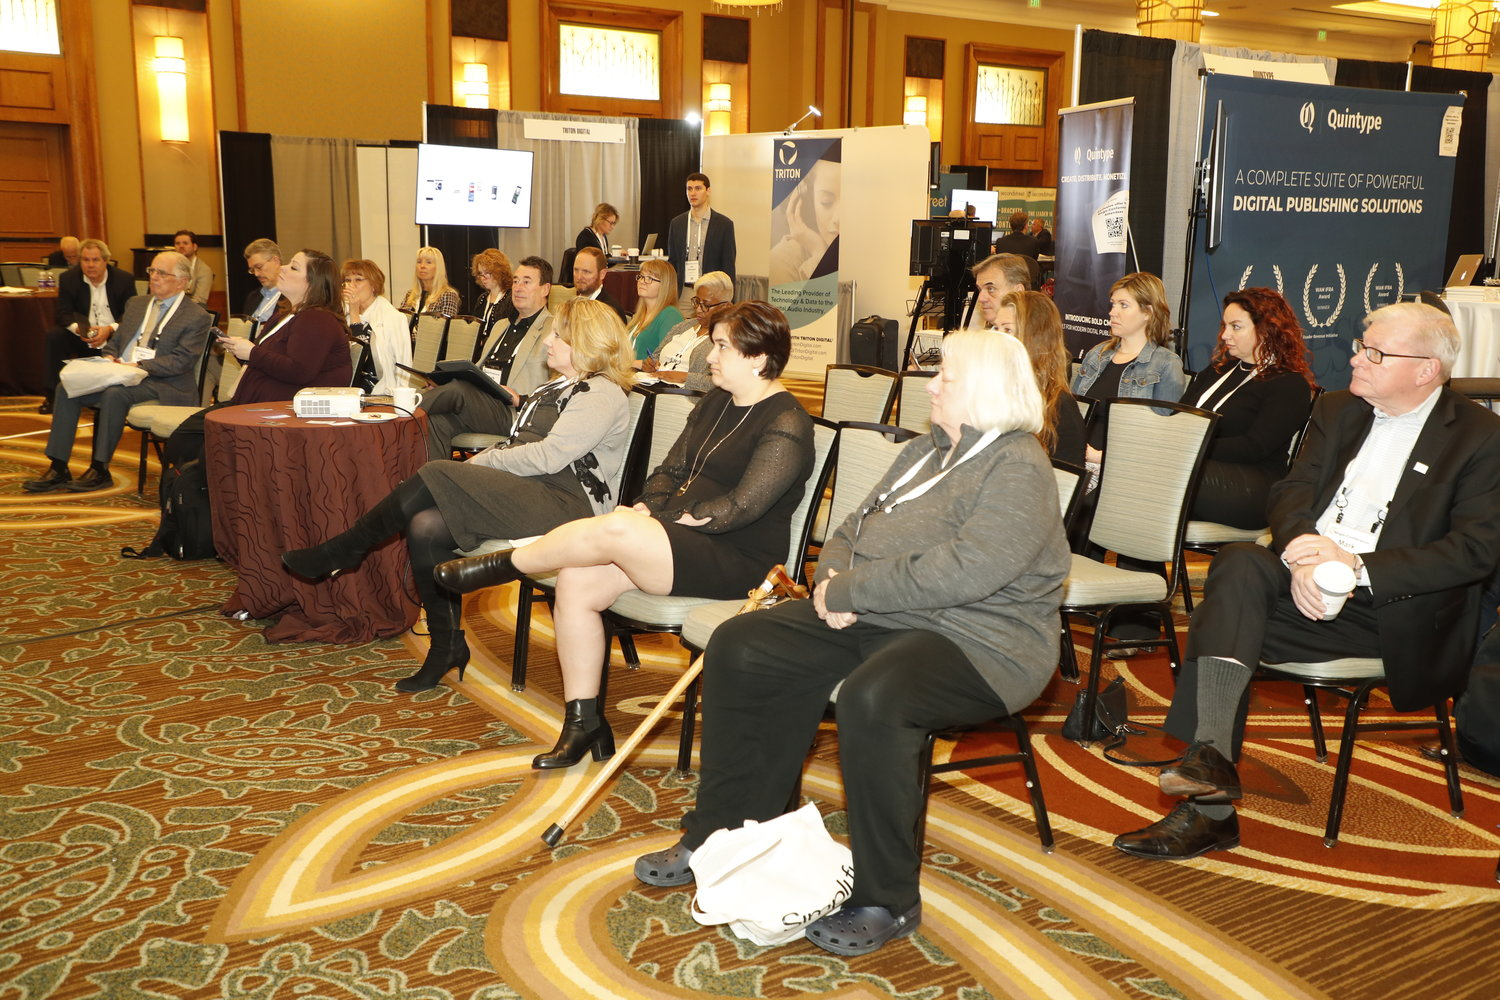 Solutions Stage: Tuesday photos of the 2020 Mega-Conference 2020 at the Omni Hotel in Fort Worth, Texas, Feb. 18, 2020. (Photo by Bob Booth)